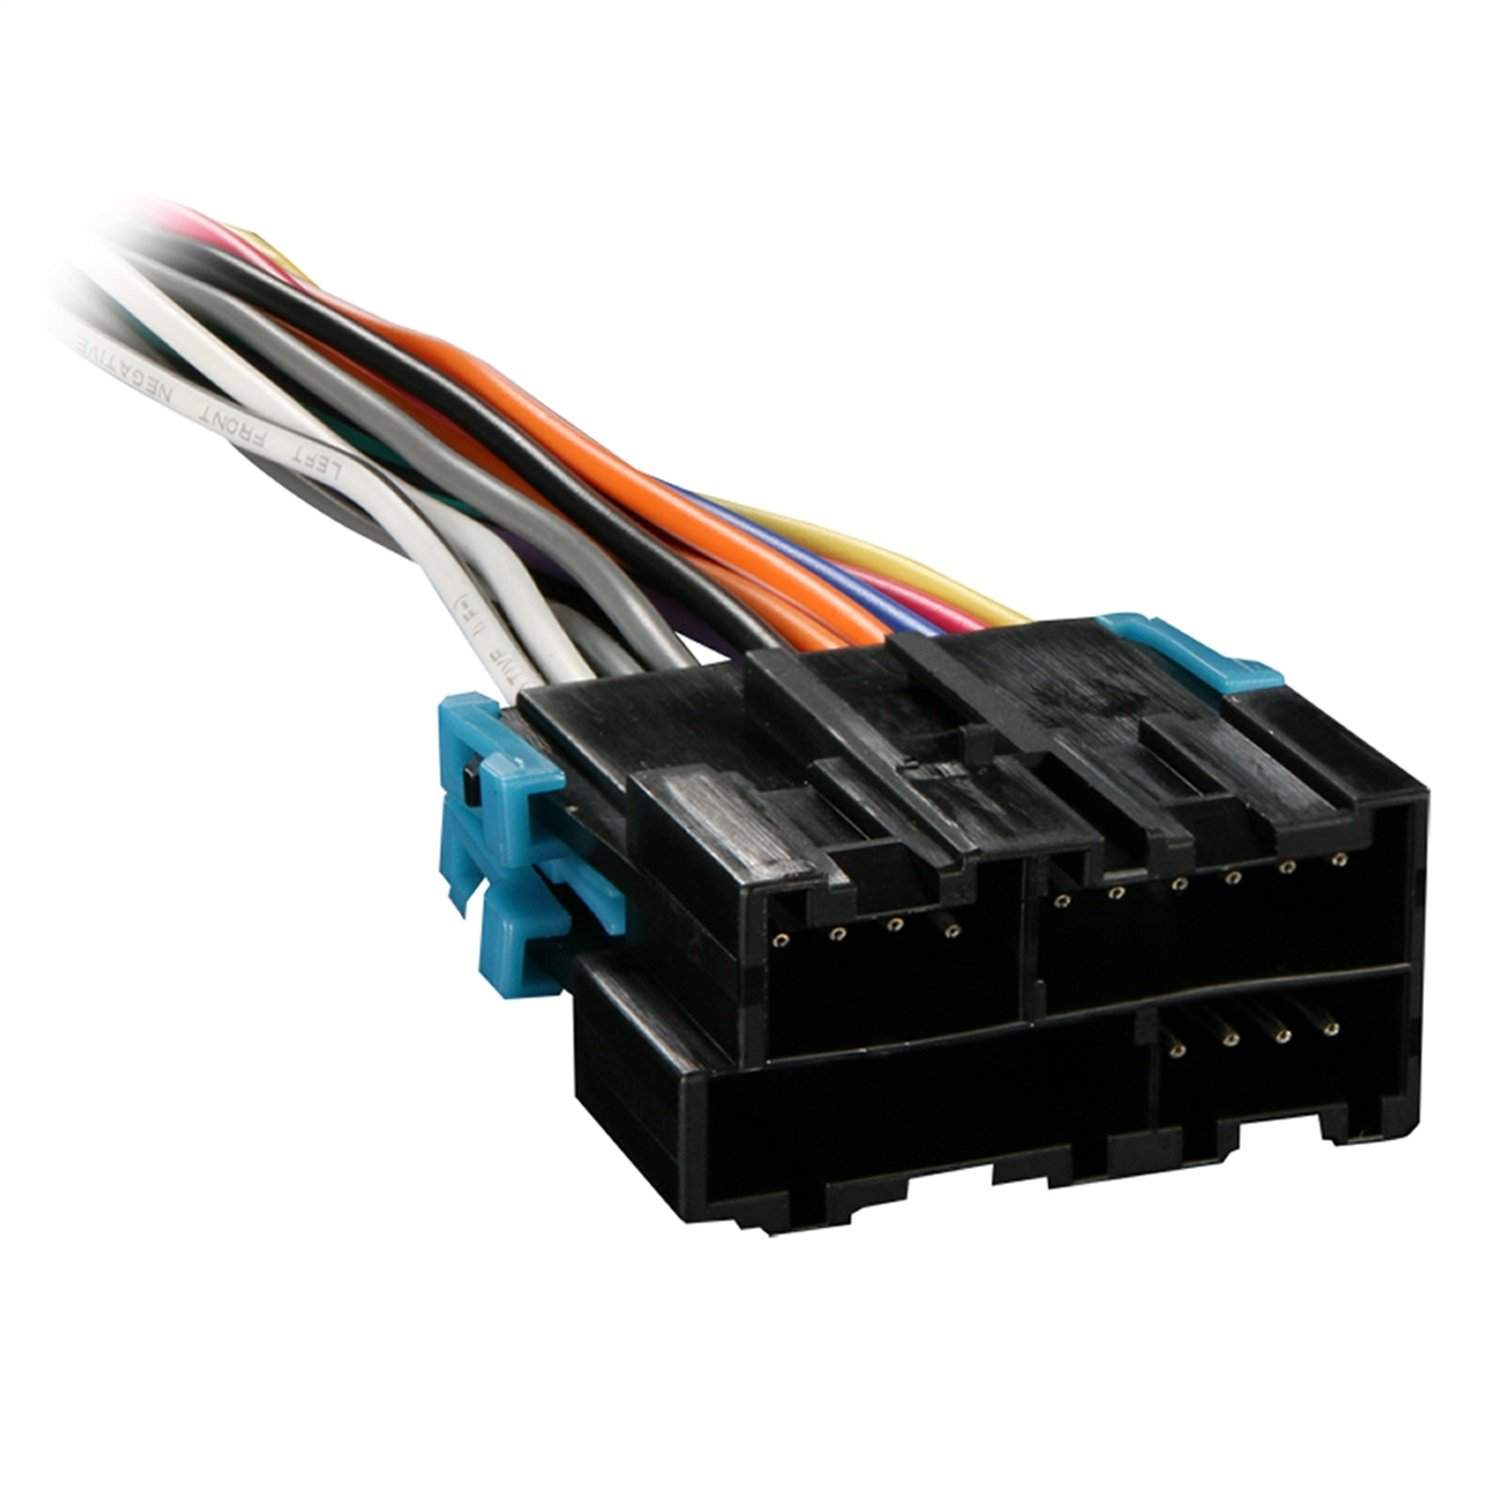 amazon com: metra 70-1858 radio wiring harness for gm 88-05 harness: car  electronics